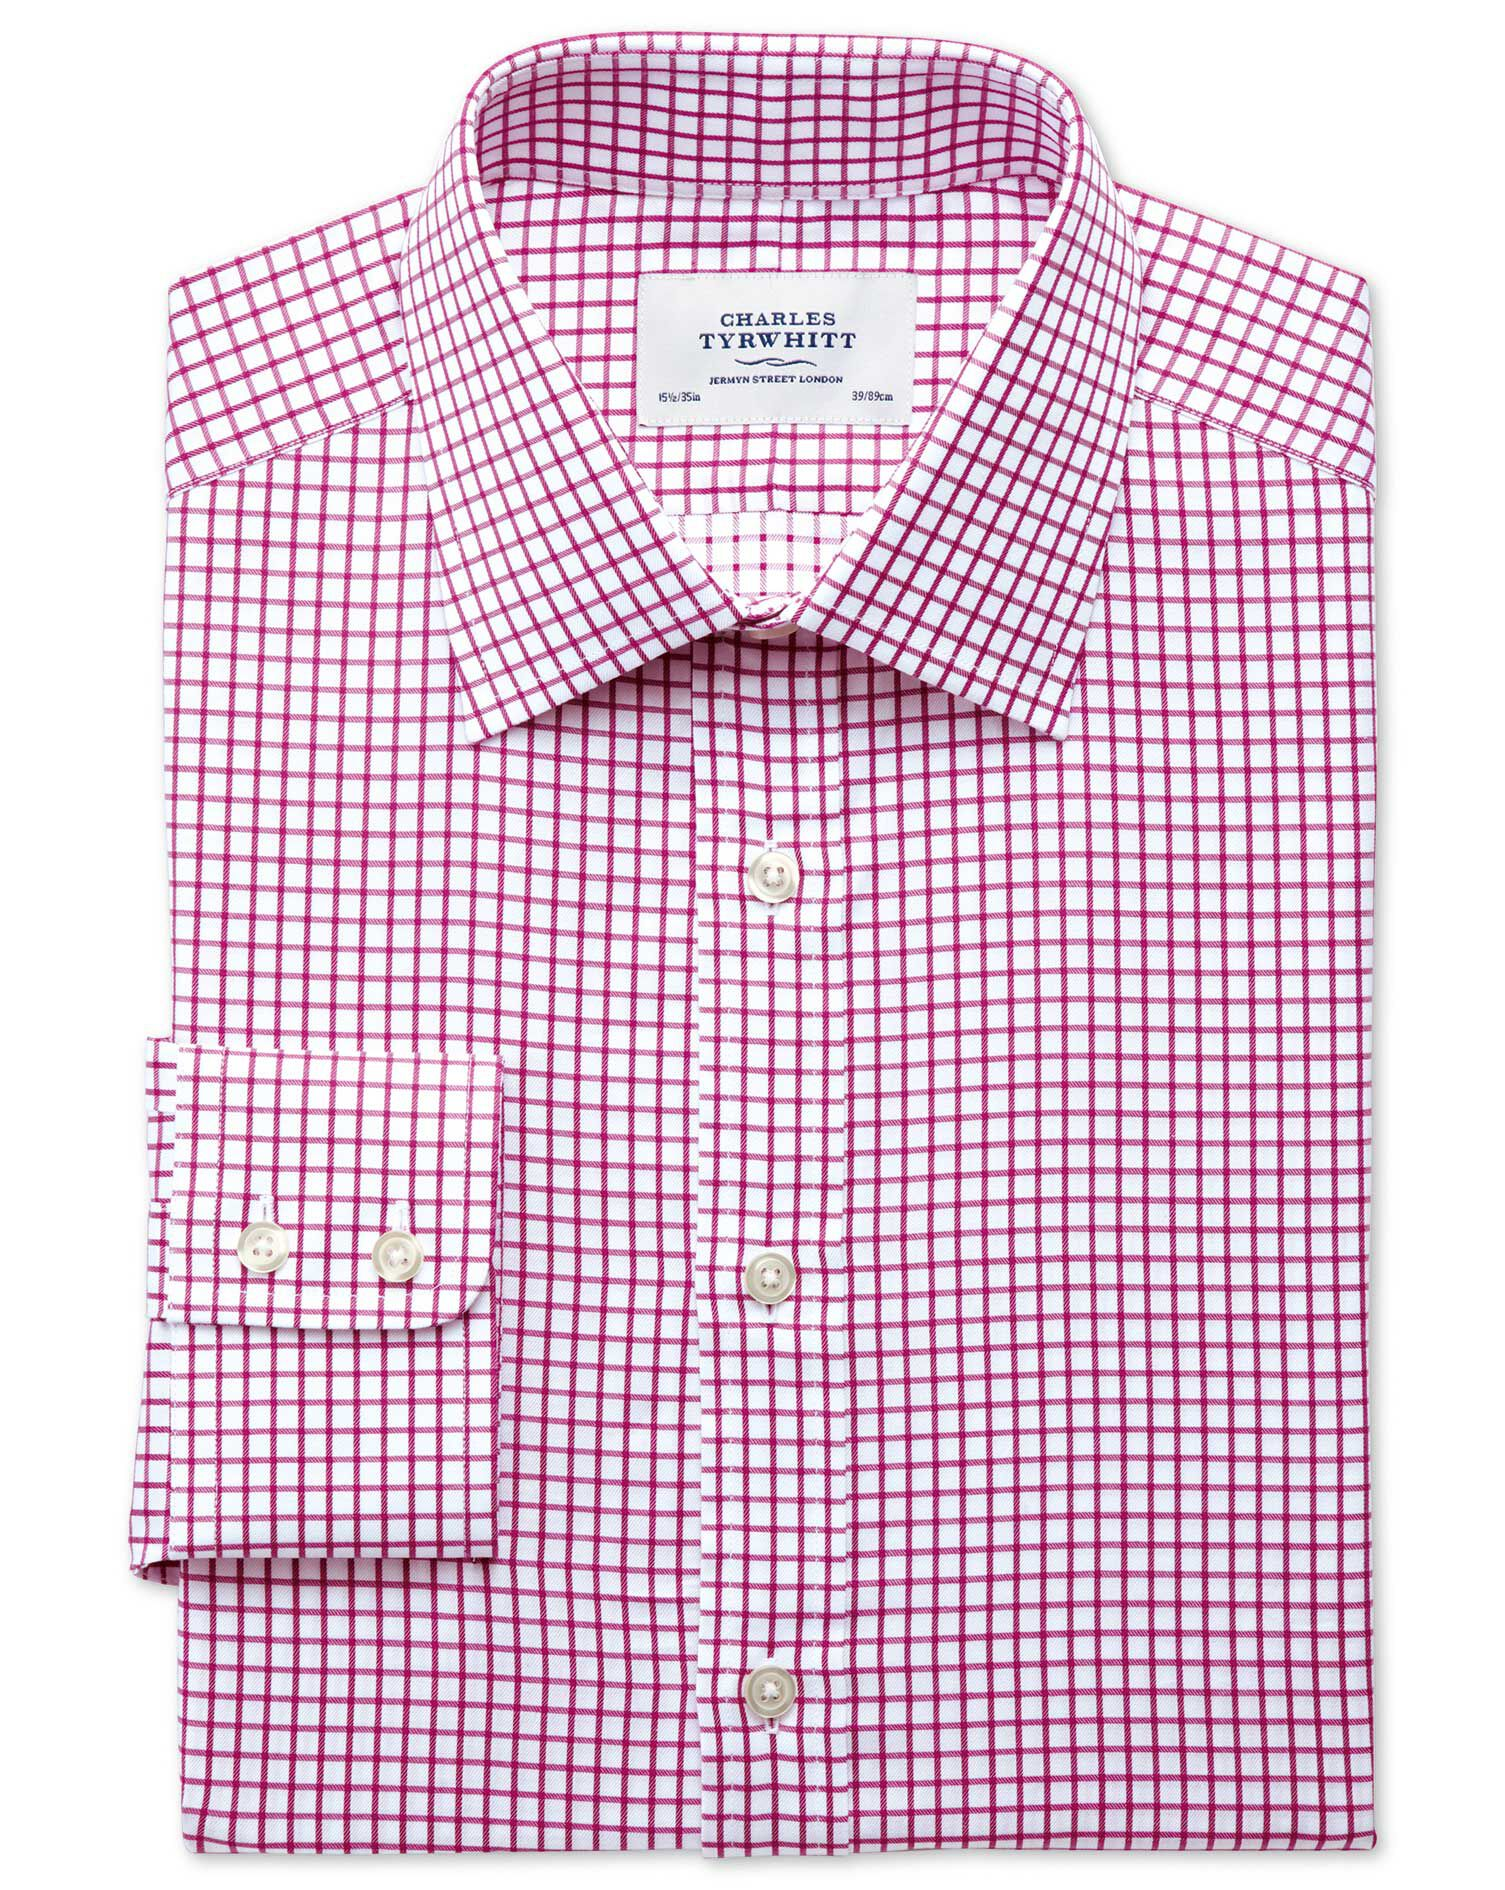 Classic Fit Twill Grid Check Fuchsia Cotton Formal Shirt Single Cuff Size 15/34 by Charles Tyrwhitt